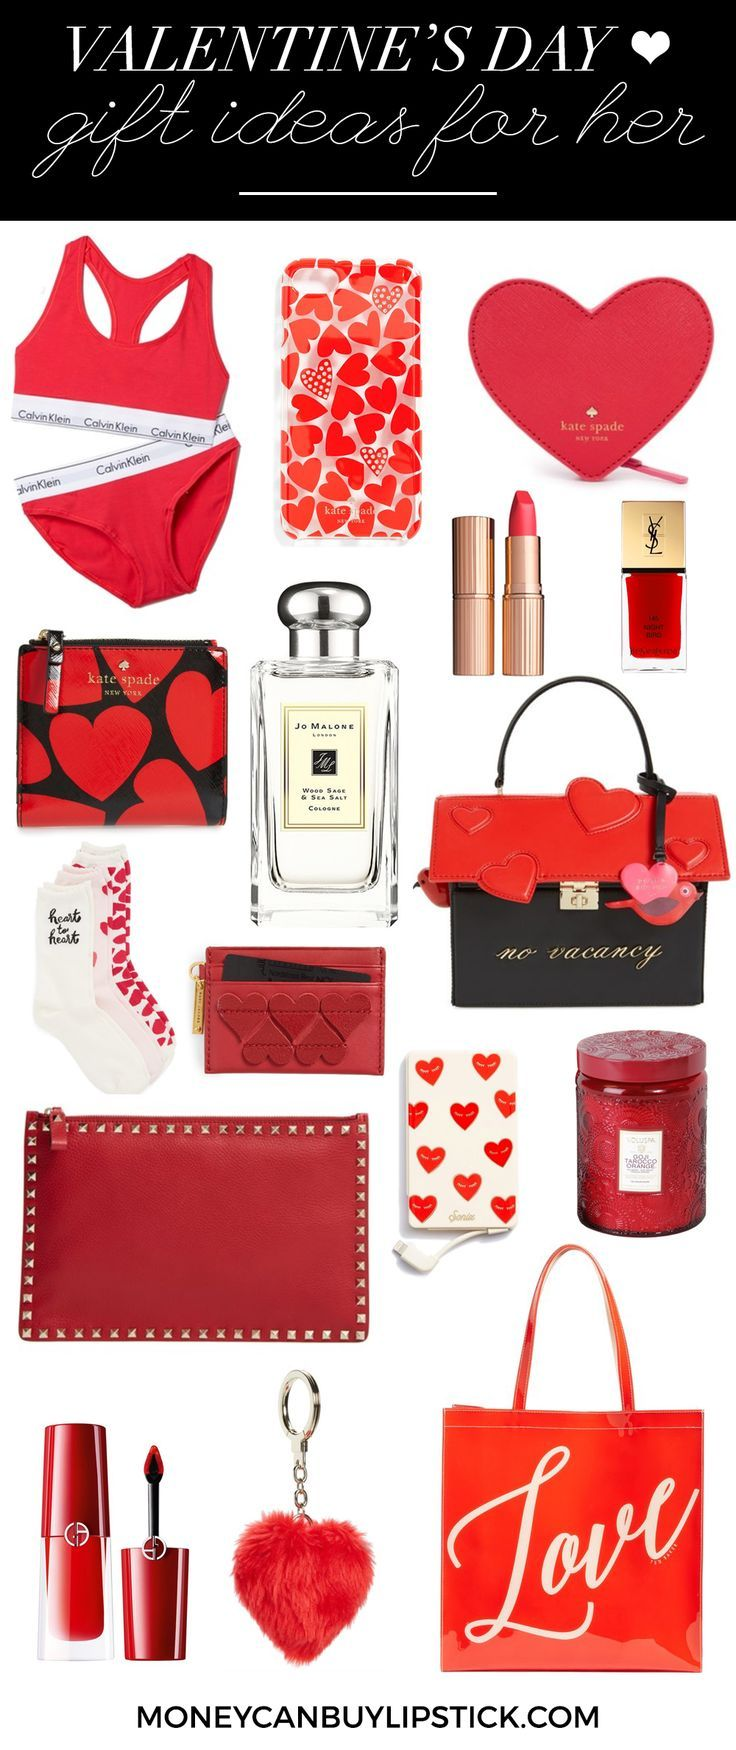 770328e1226d4876903e782f3b6e305b red fashion valentine day gifts - Valentine's Day | Gifts For Her | Valentines's Day Gifts For Her | Vday ...